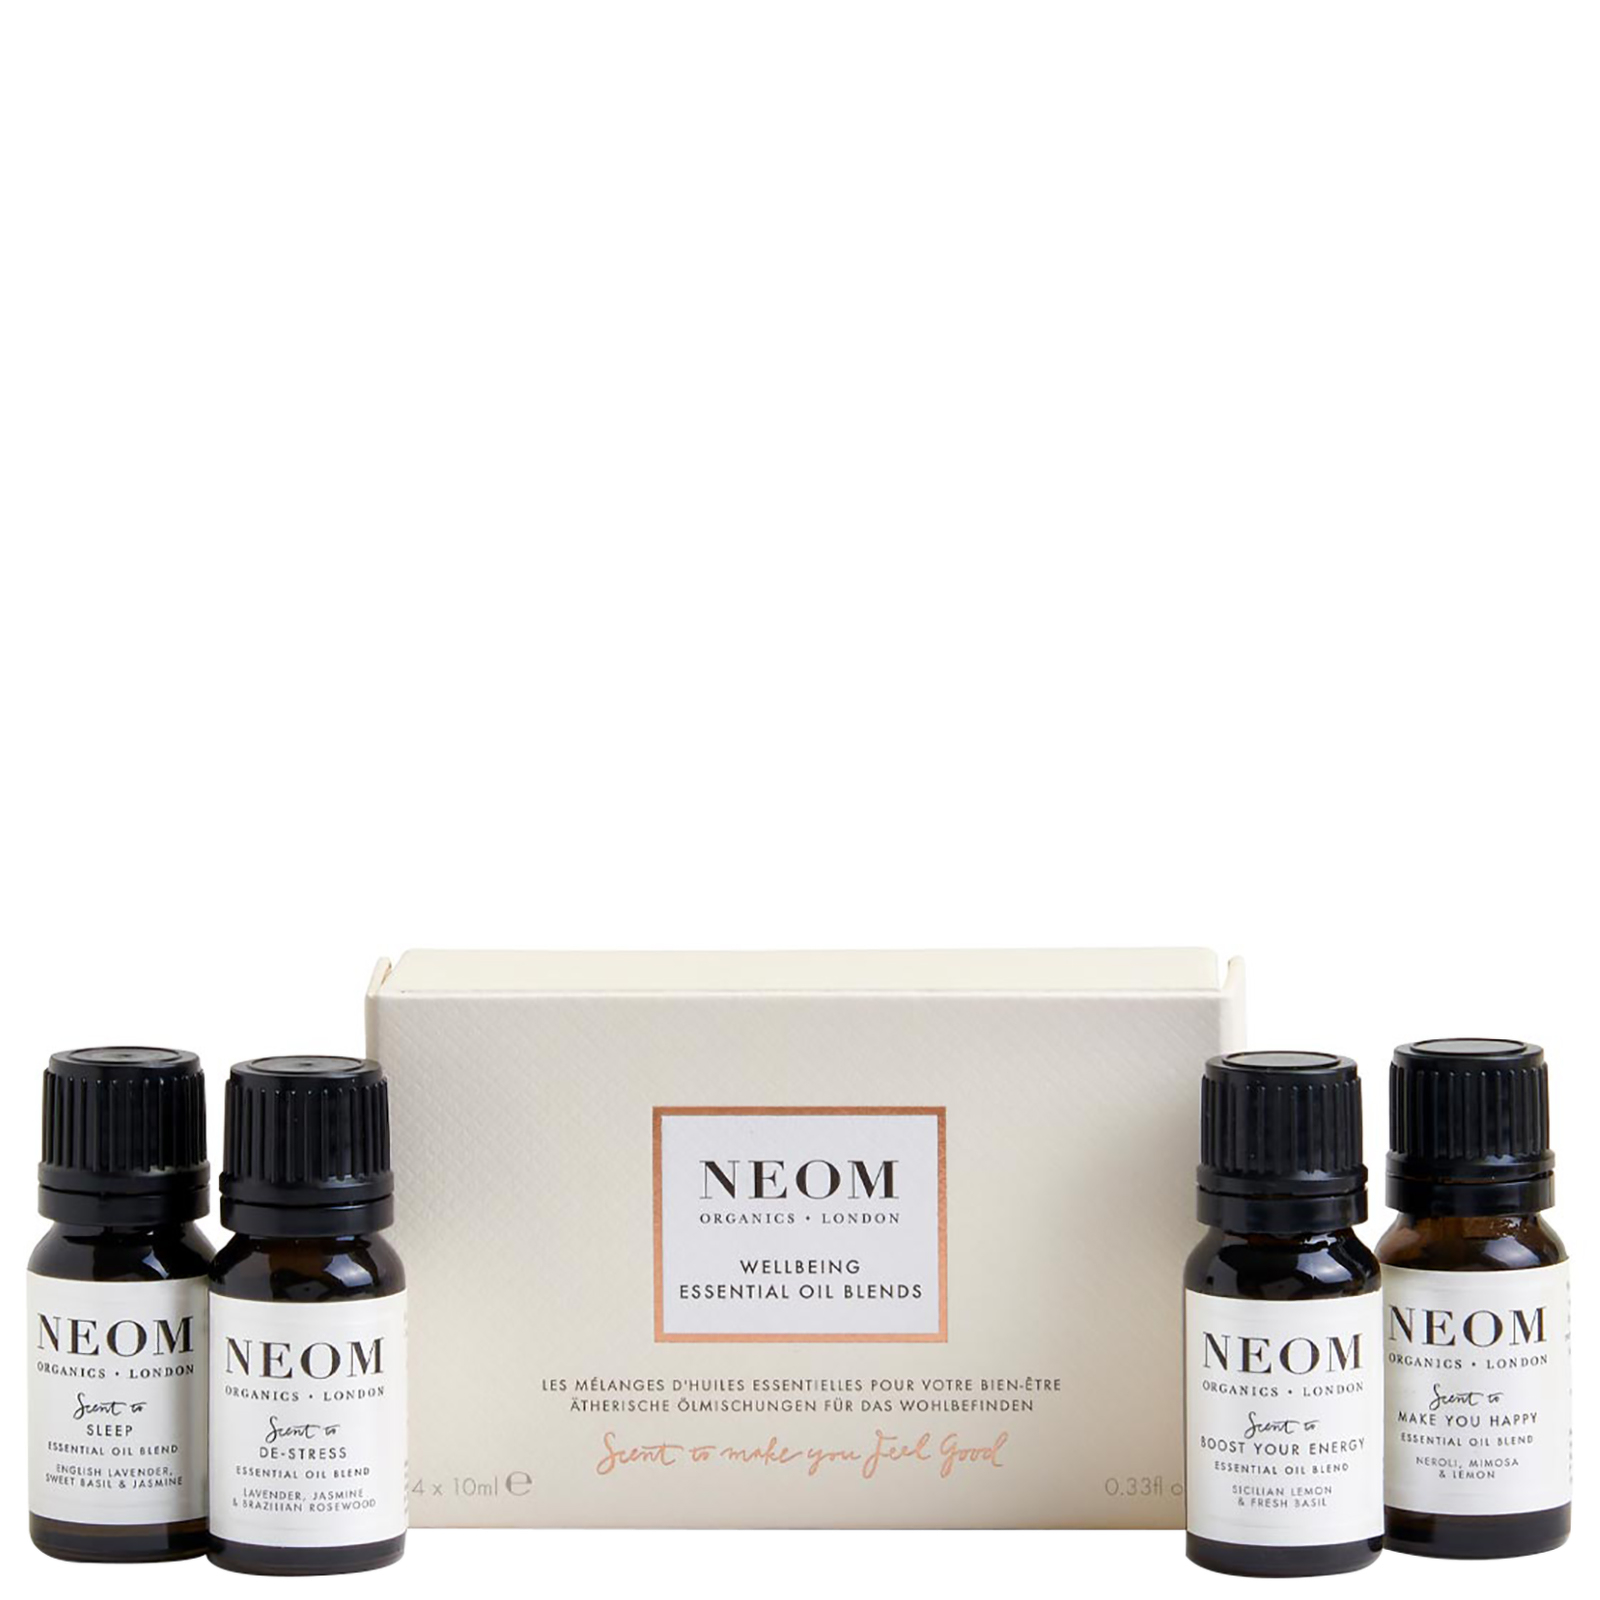 Neom Organics London Gifting & Accessories Wellbeing Essential Oil Blends 4 x 10ml